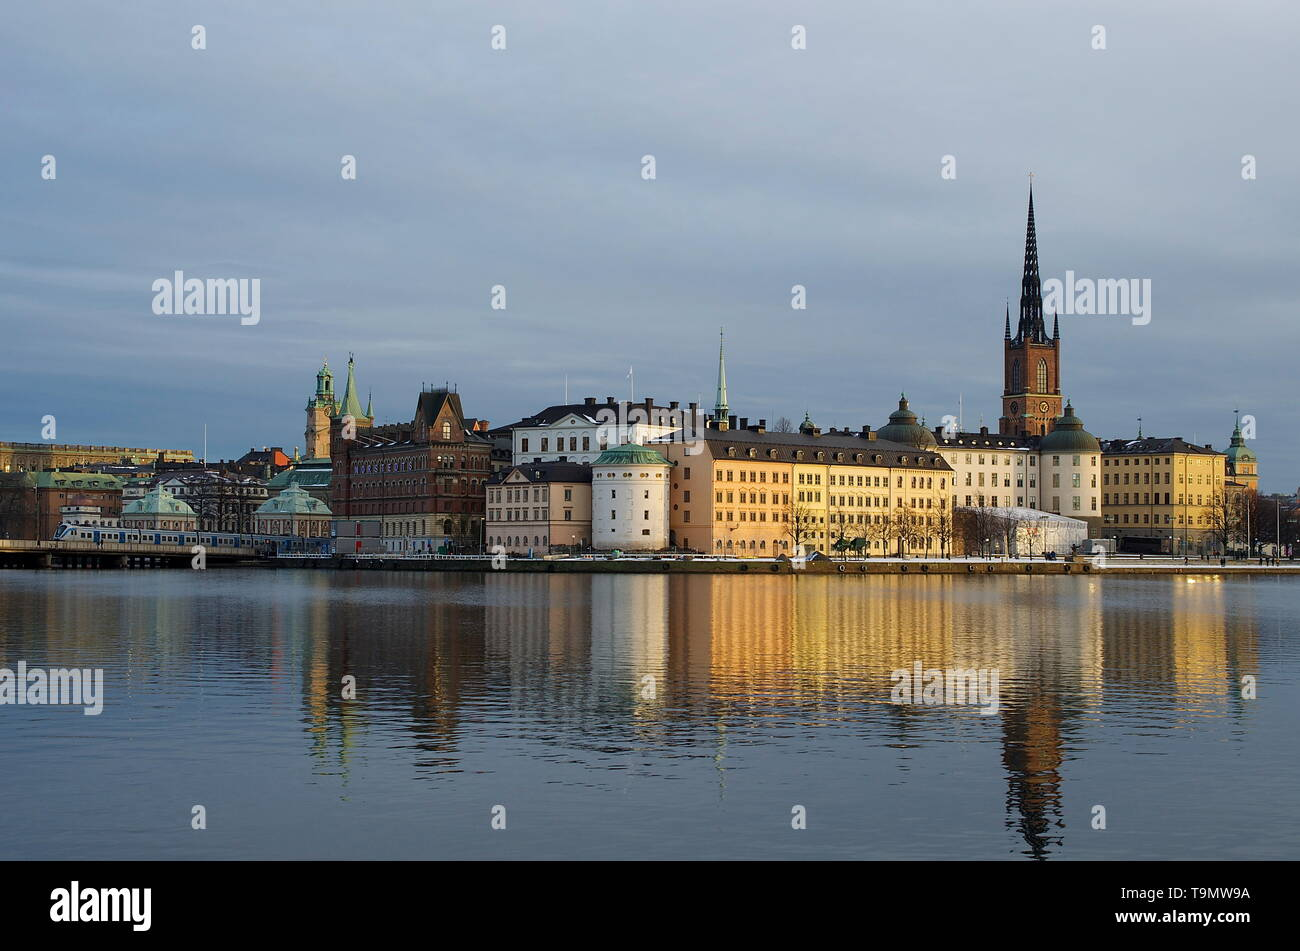 water reflections, historic city of Stockholm, Sweden, Gamla Stan - Stock Image